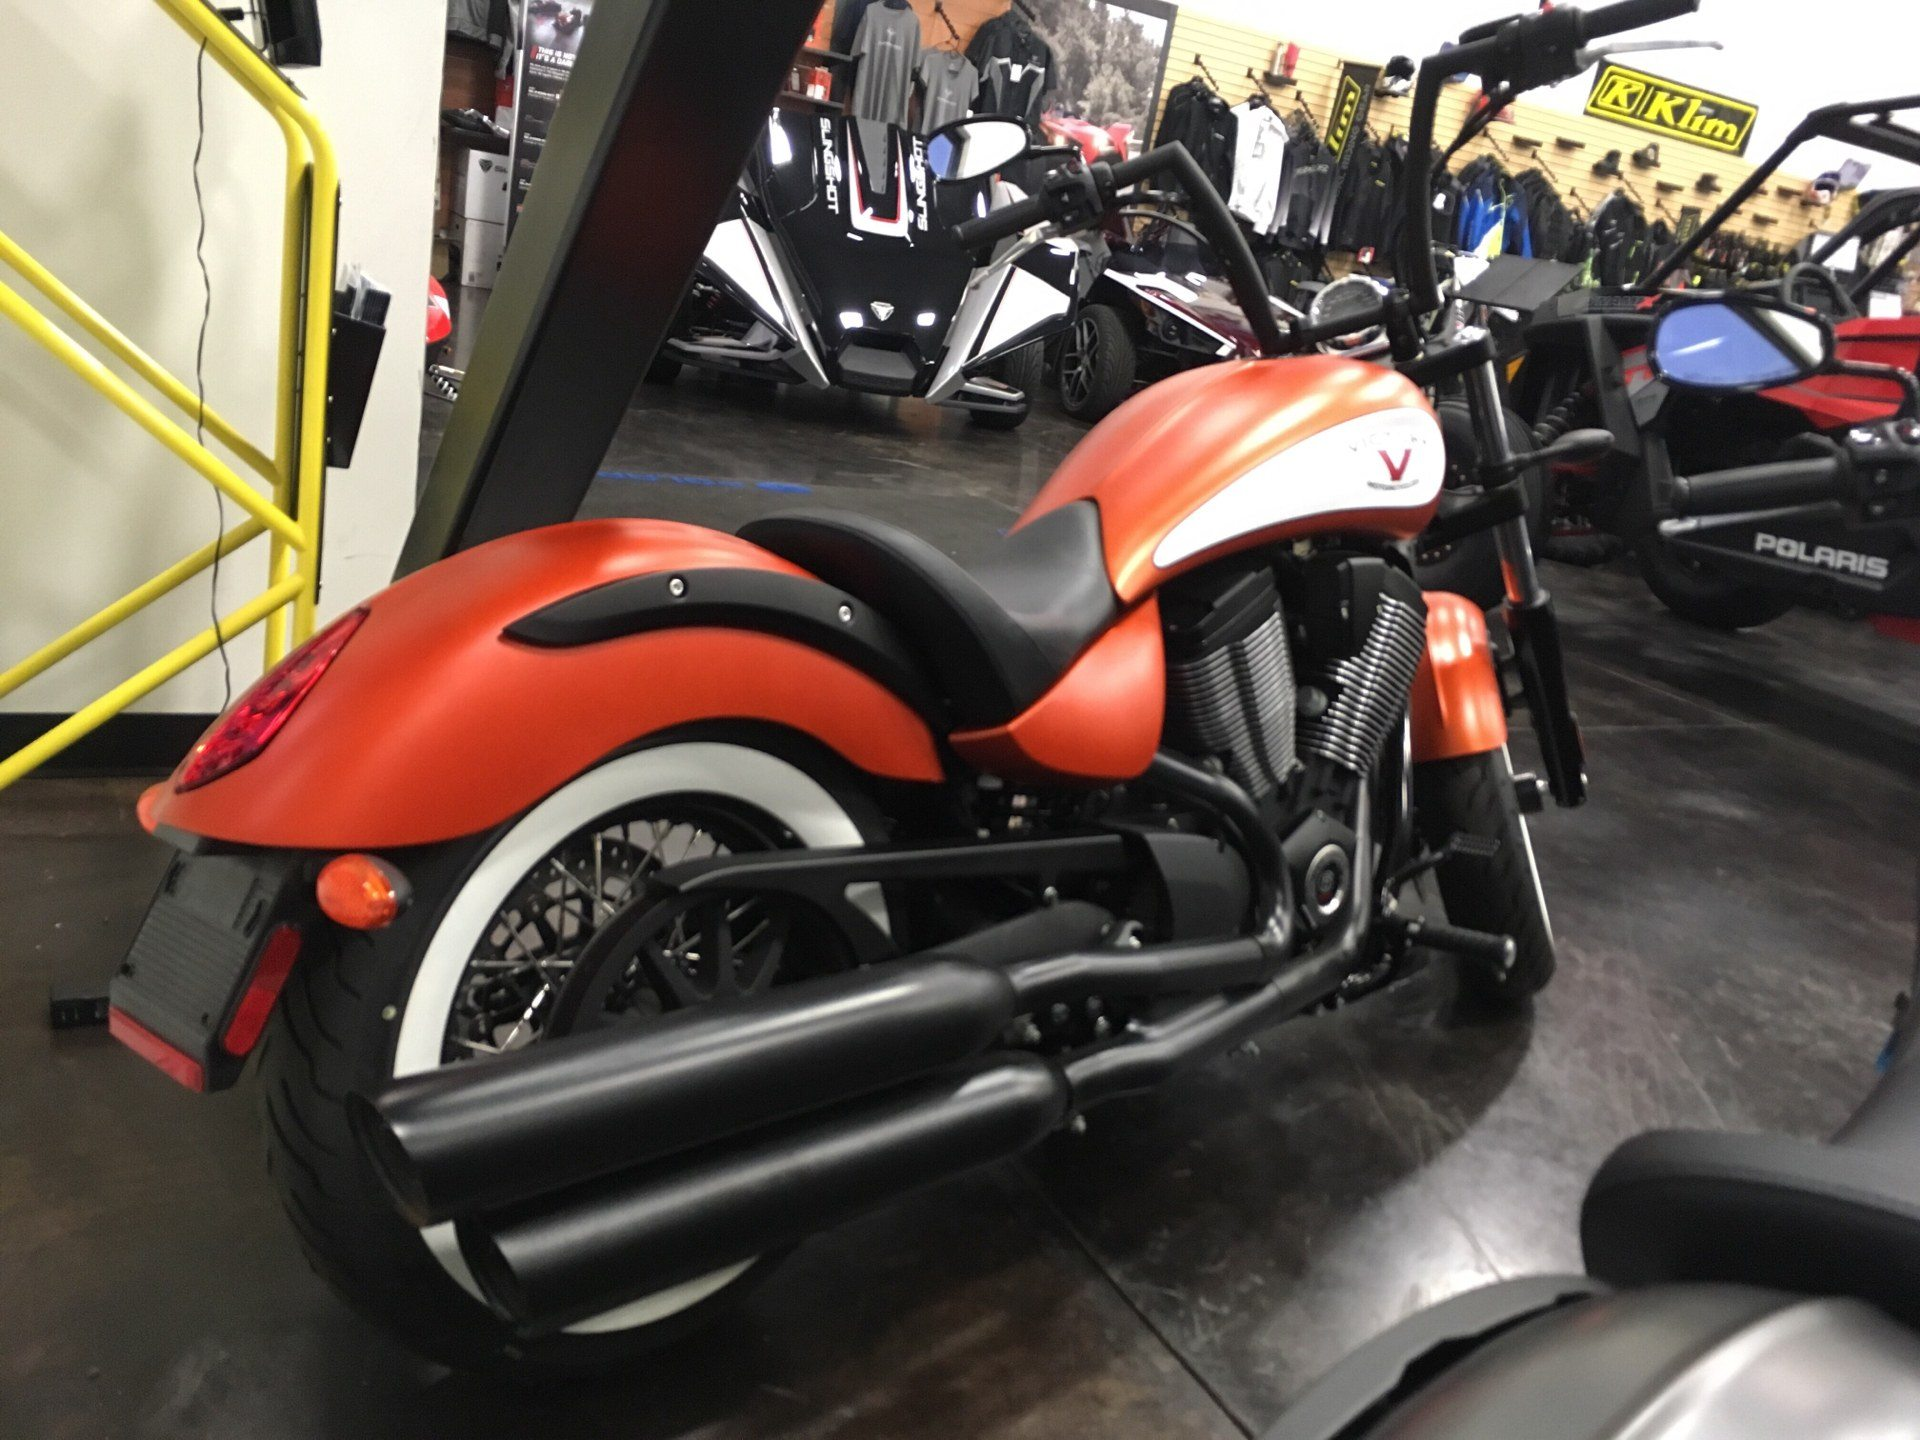 New 2017 Victory High Ball Motorcycles in SK Northwest Power Sports